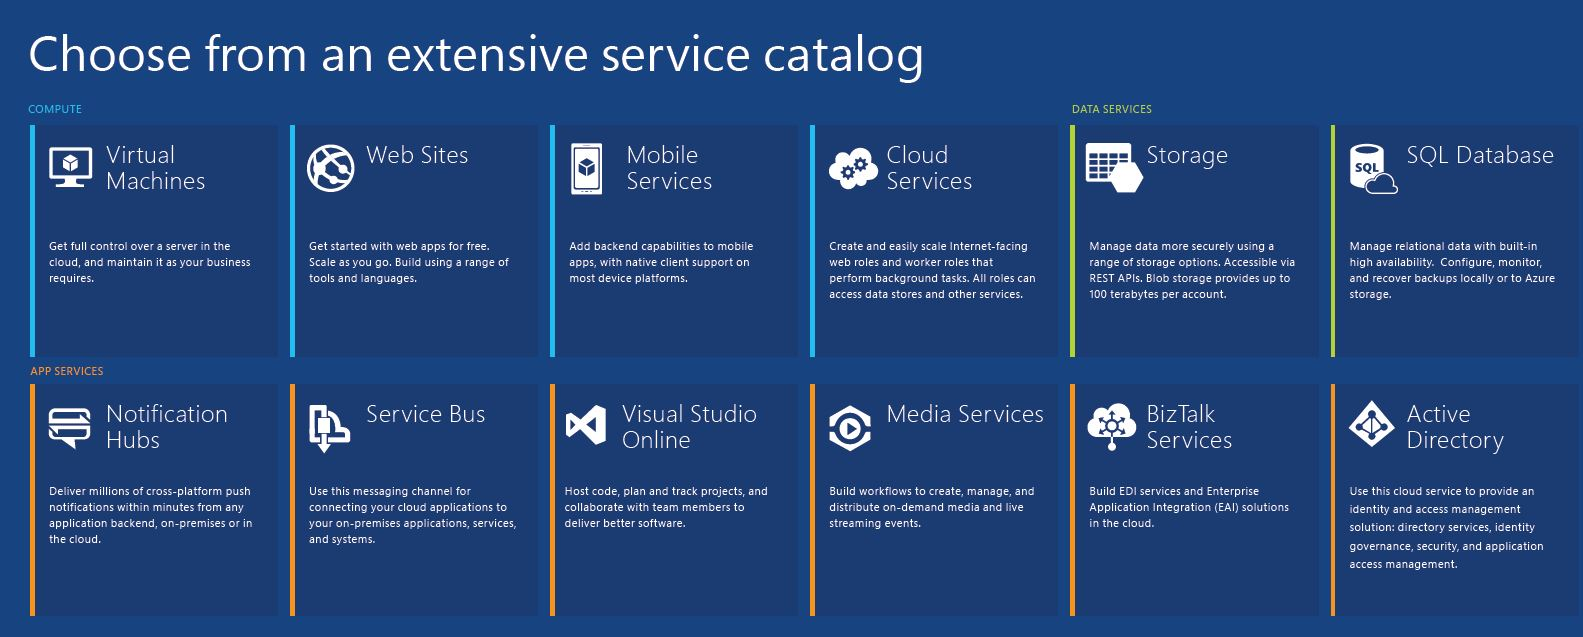 Overview Poster Of Azure Features Services And Common